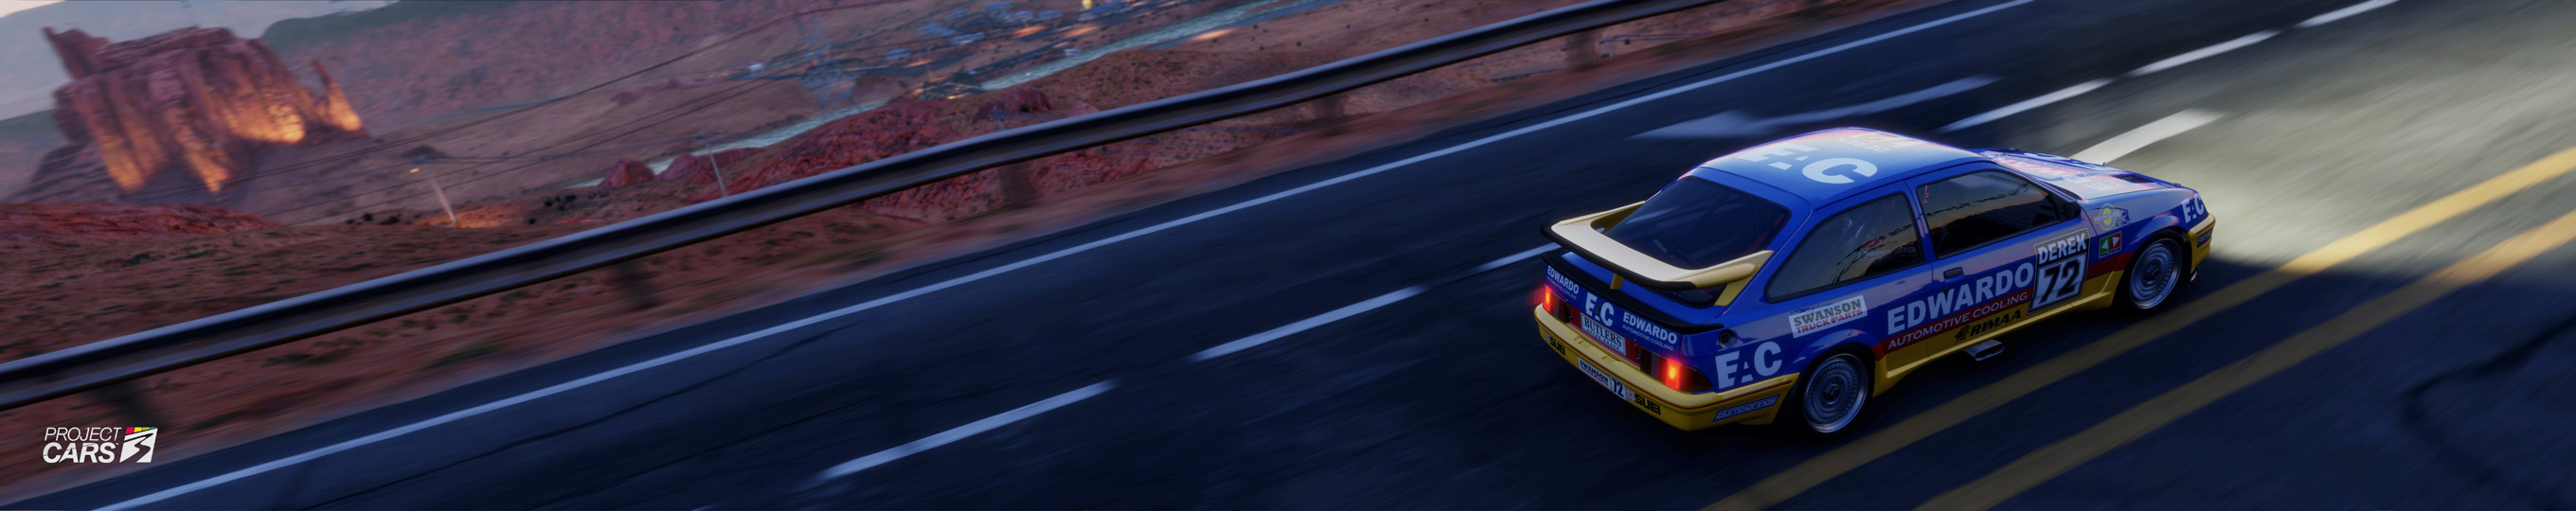 2 PROJECT CARS 3 COSWORTH at MONUMENT CANYON crop copy.jpg